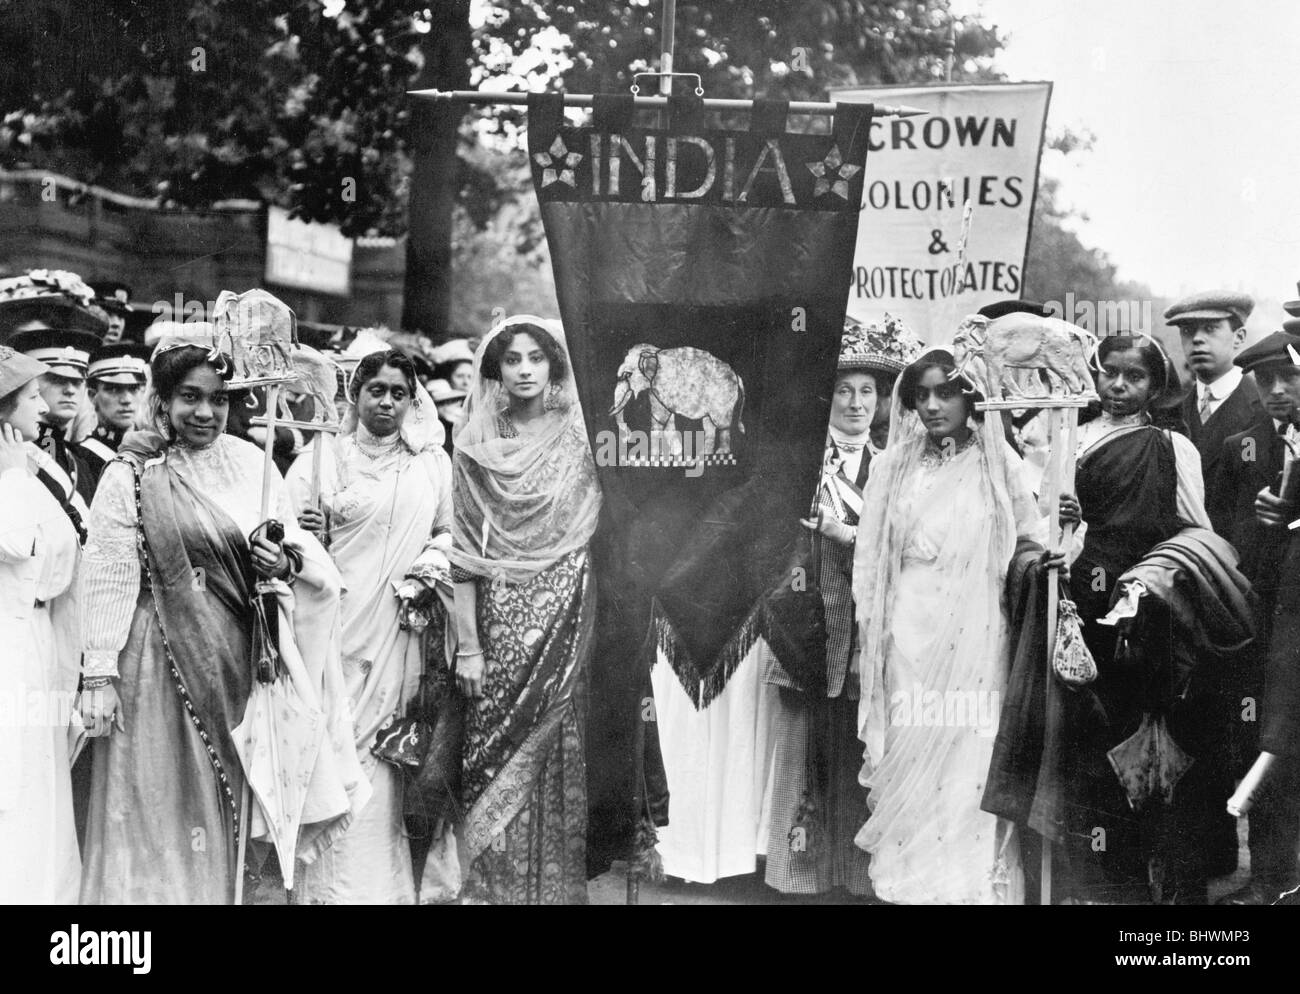 Indian suffragettes on the Womens Coronation Procession